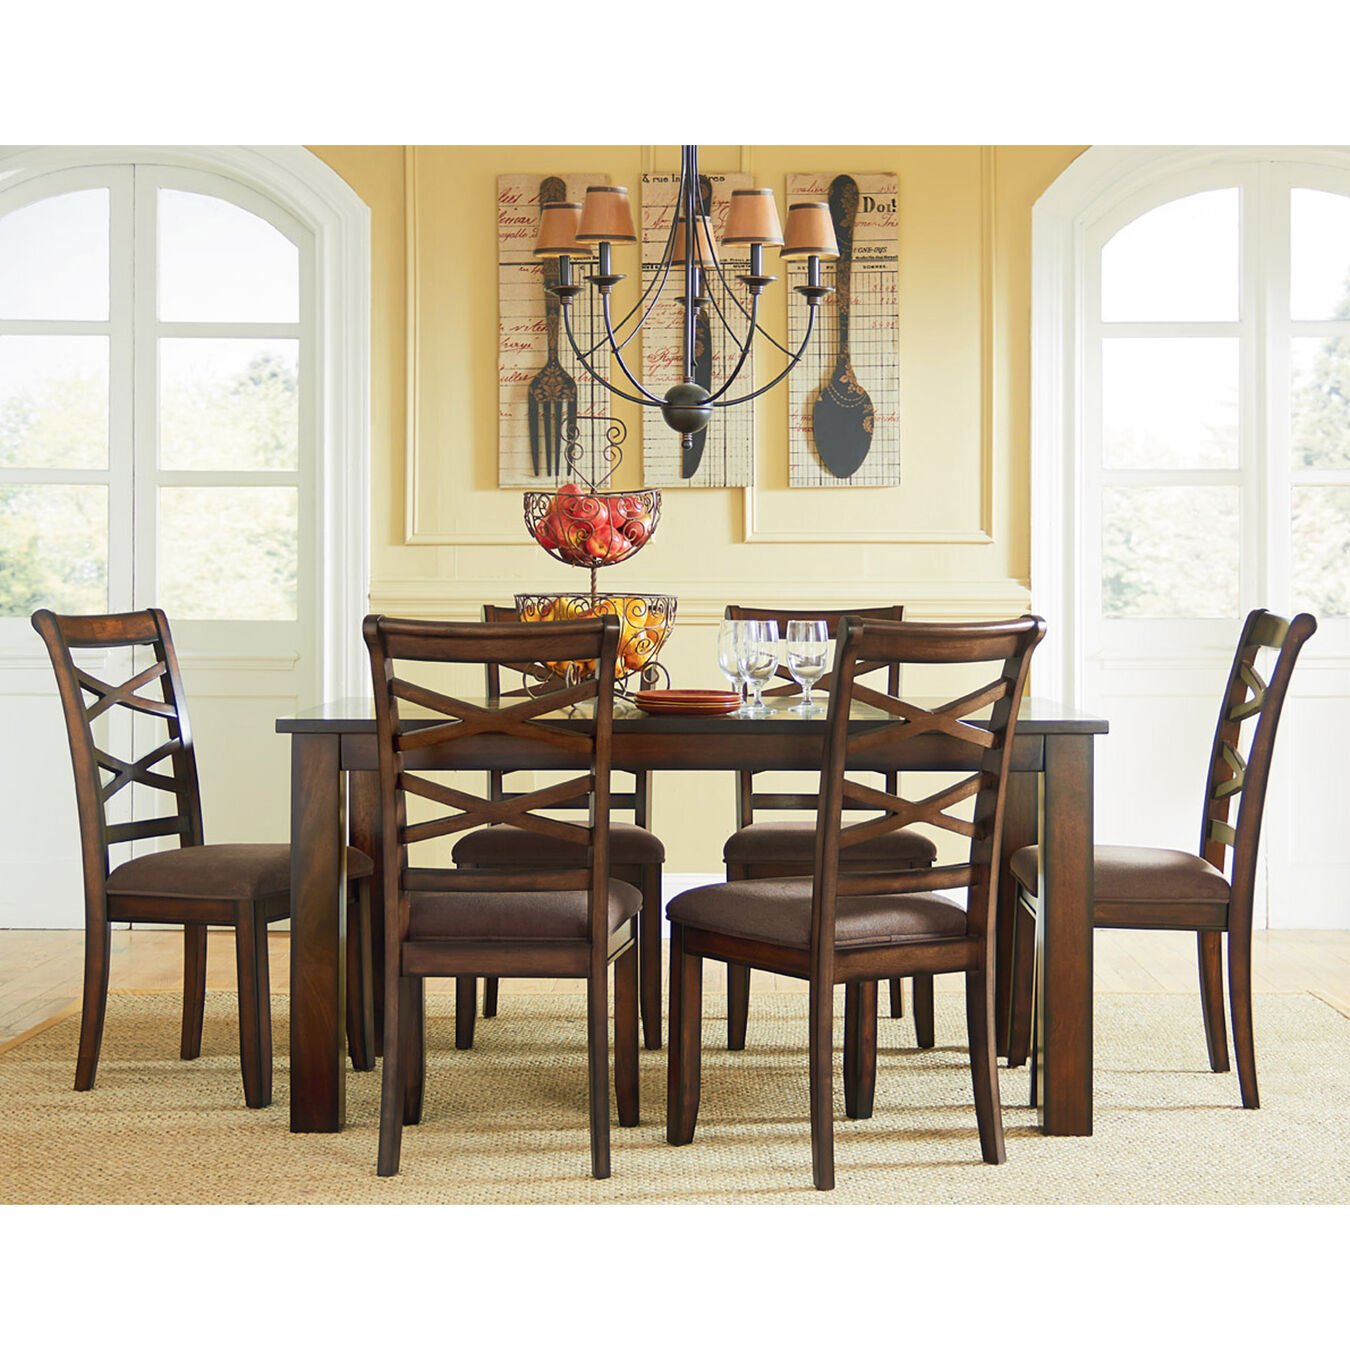 Aarons Dining Room Sets 2